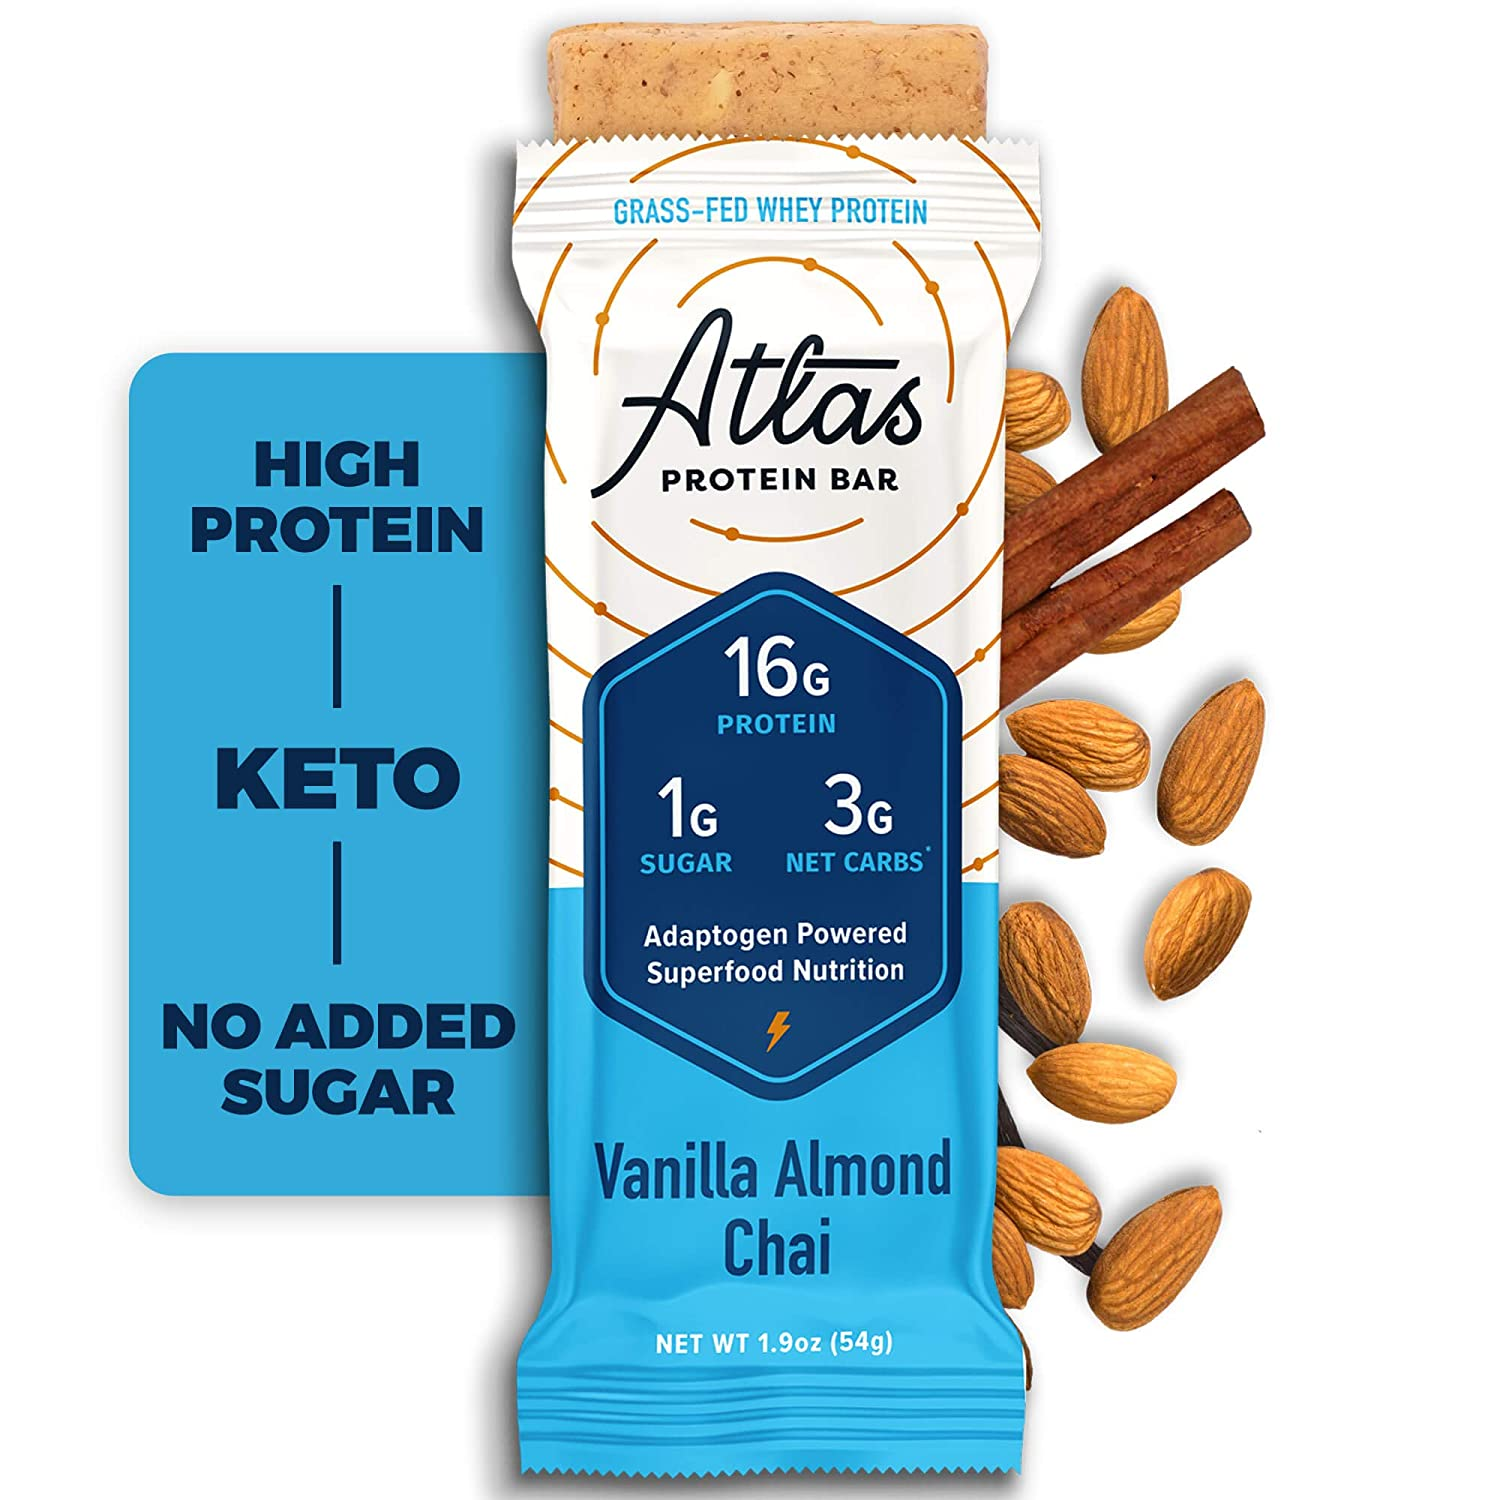 Atlas Protein Bar, Meal Replacement, Keto-Friendly Snack, Grass-Fed Whey, Organic Ashwagandha, Low Sugar, Low Carb, Gluten Free, 10 pack, Vanilla Almond Chai